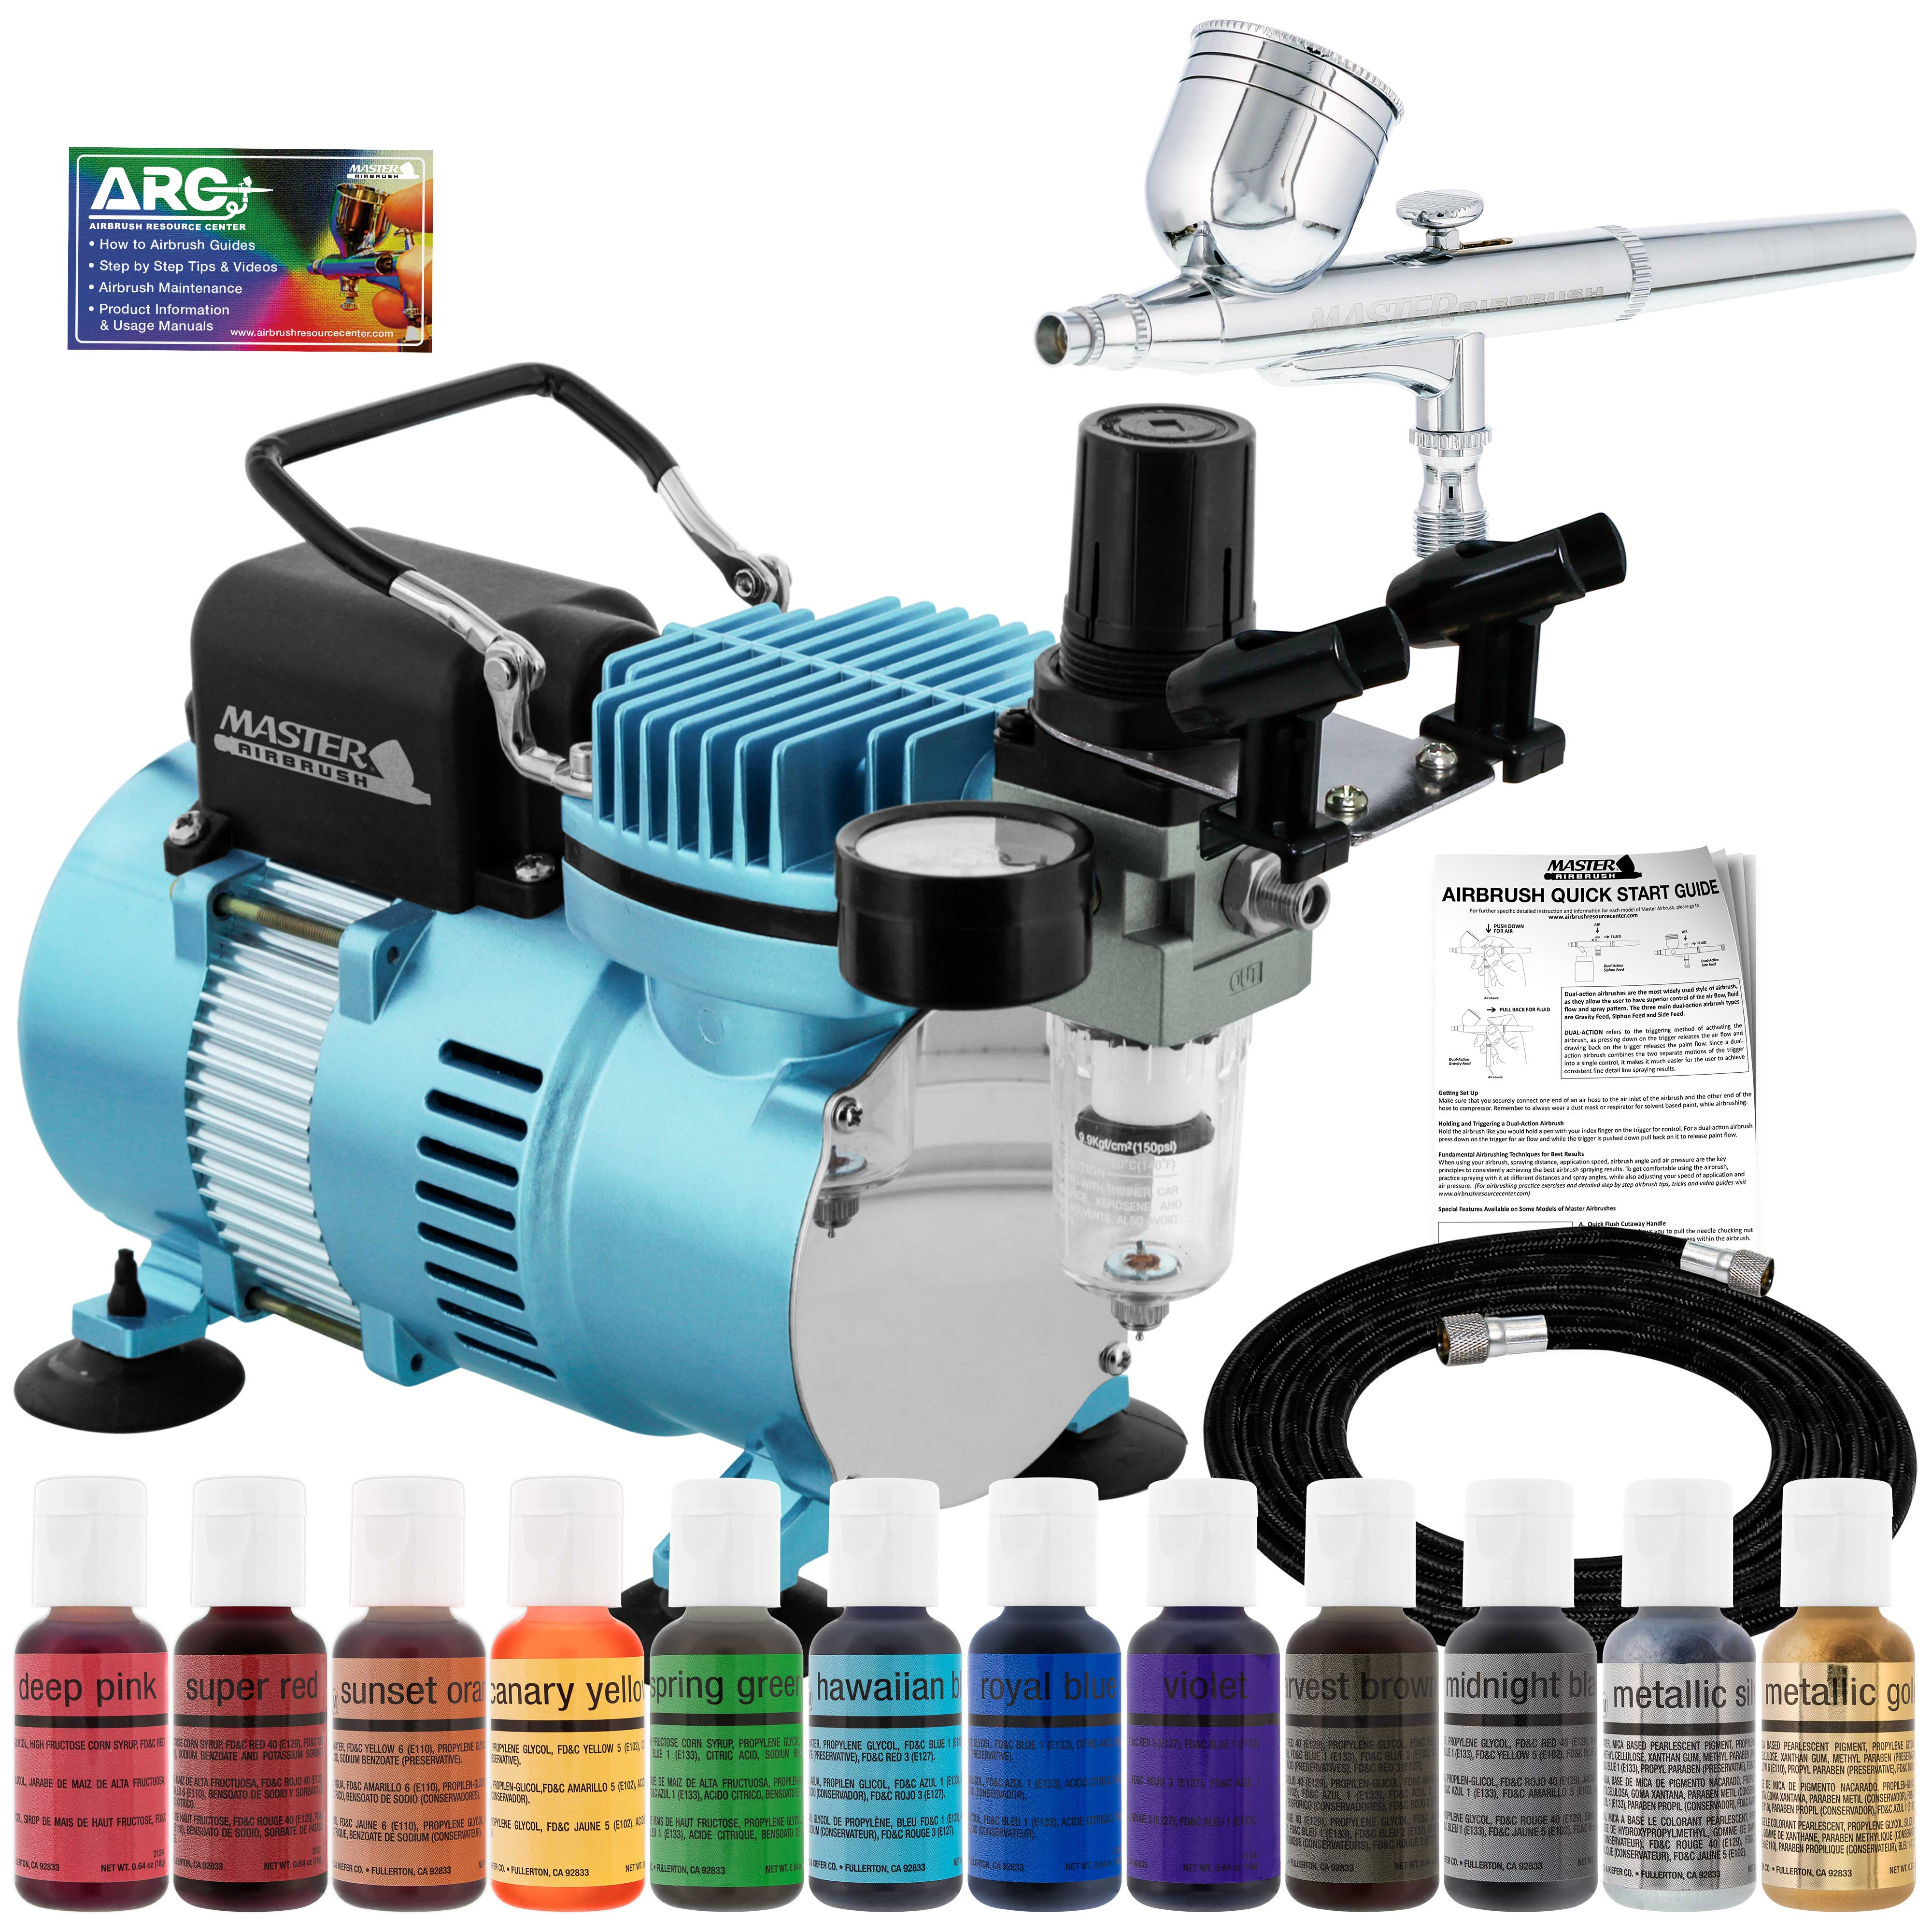 Details about Master G22 Airbrush Cake Decorating Air Compressor Kit 12  Chefmaster Food Colors